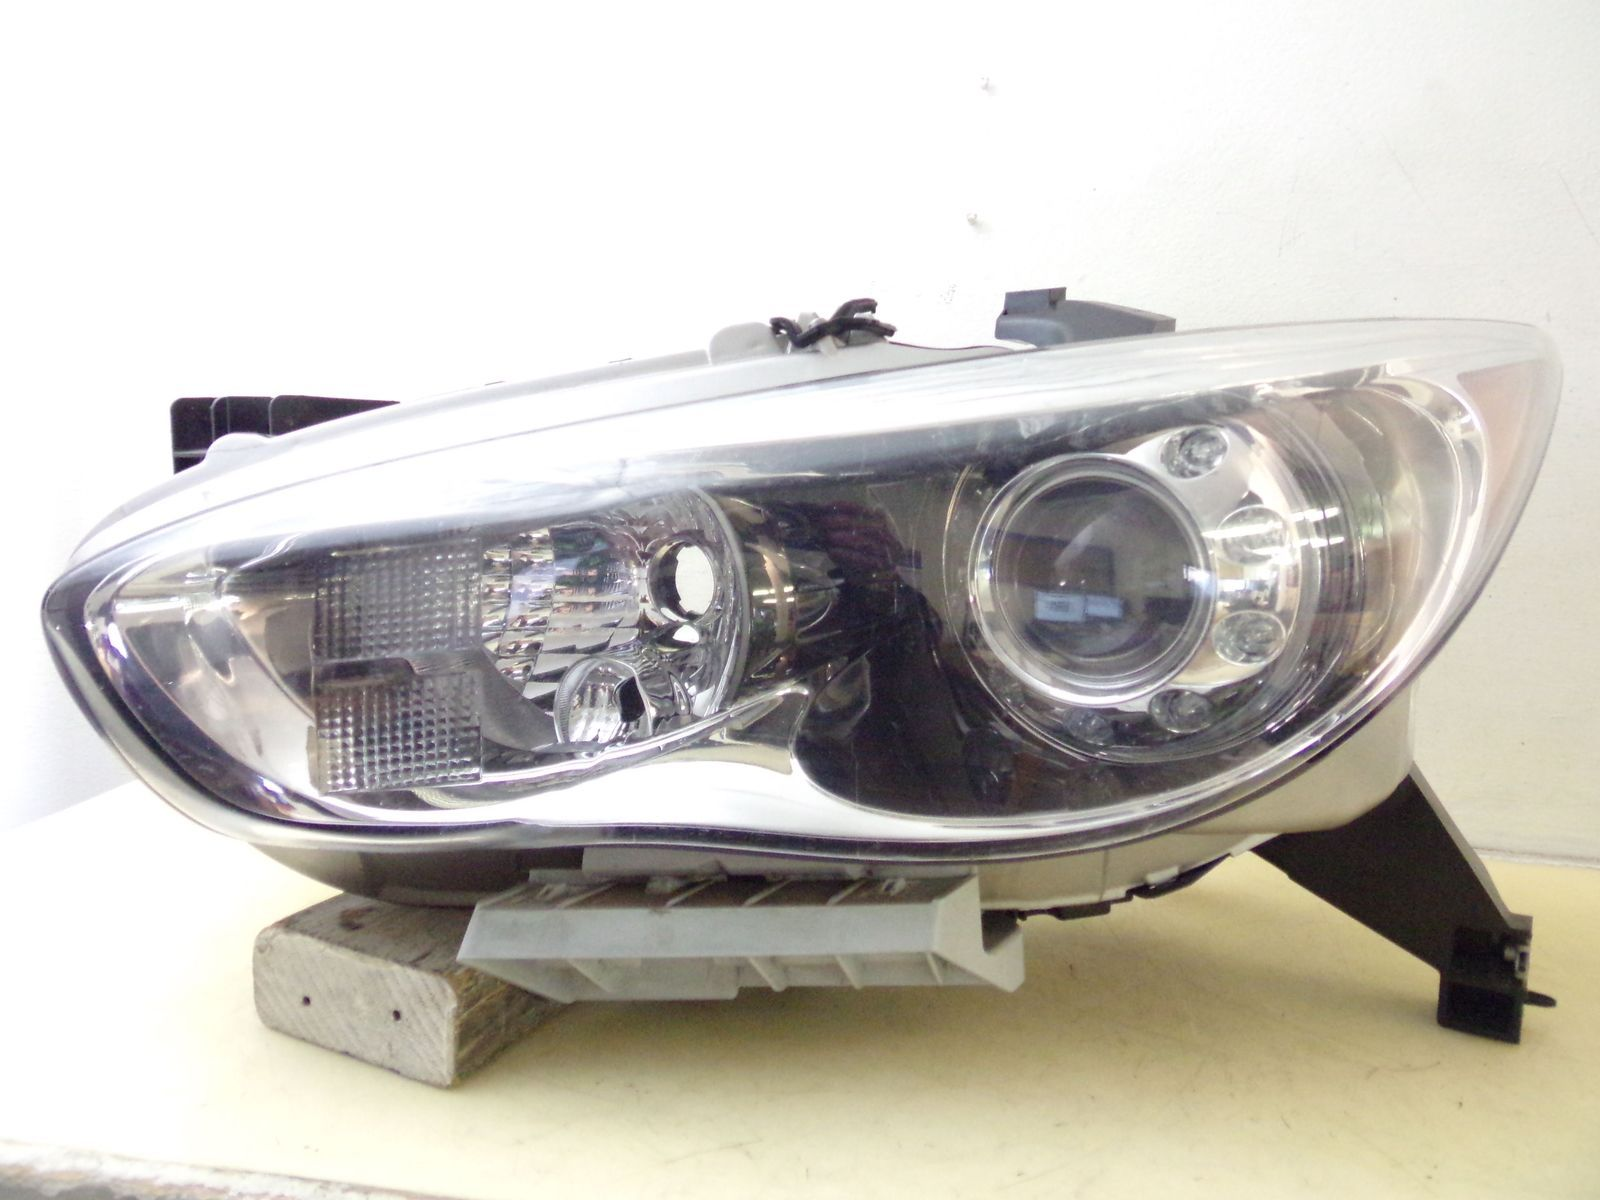 Primary image for 2013 INFINITI JX35 2014 2015 QX60 DRIVER LH XENON HID HEADLIGHT OEM 59